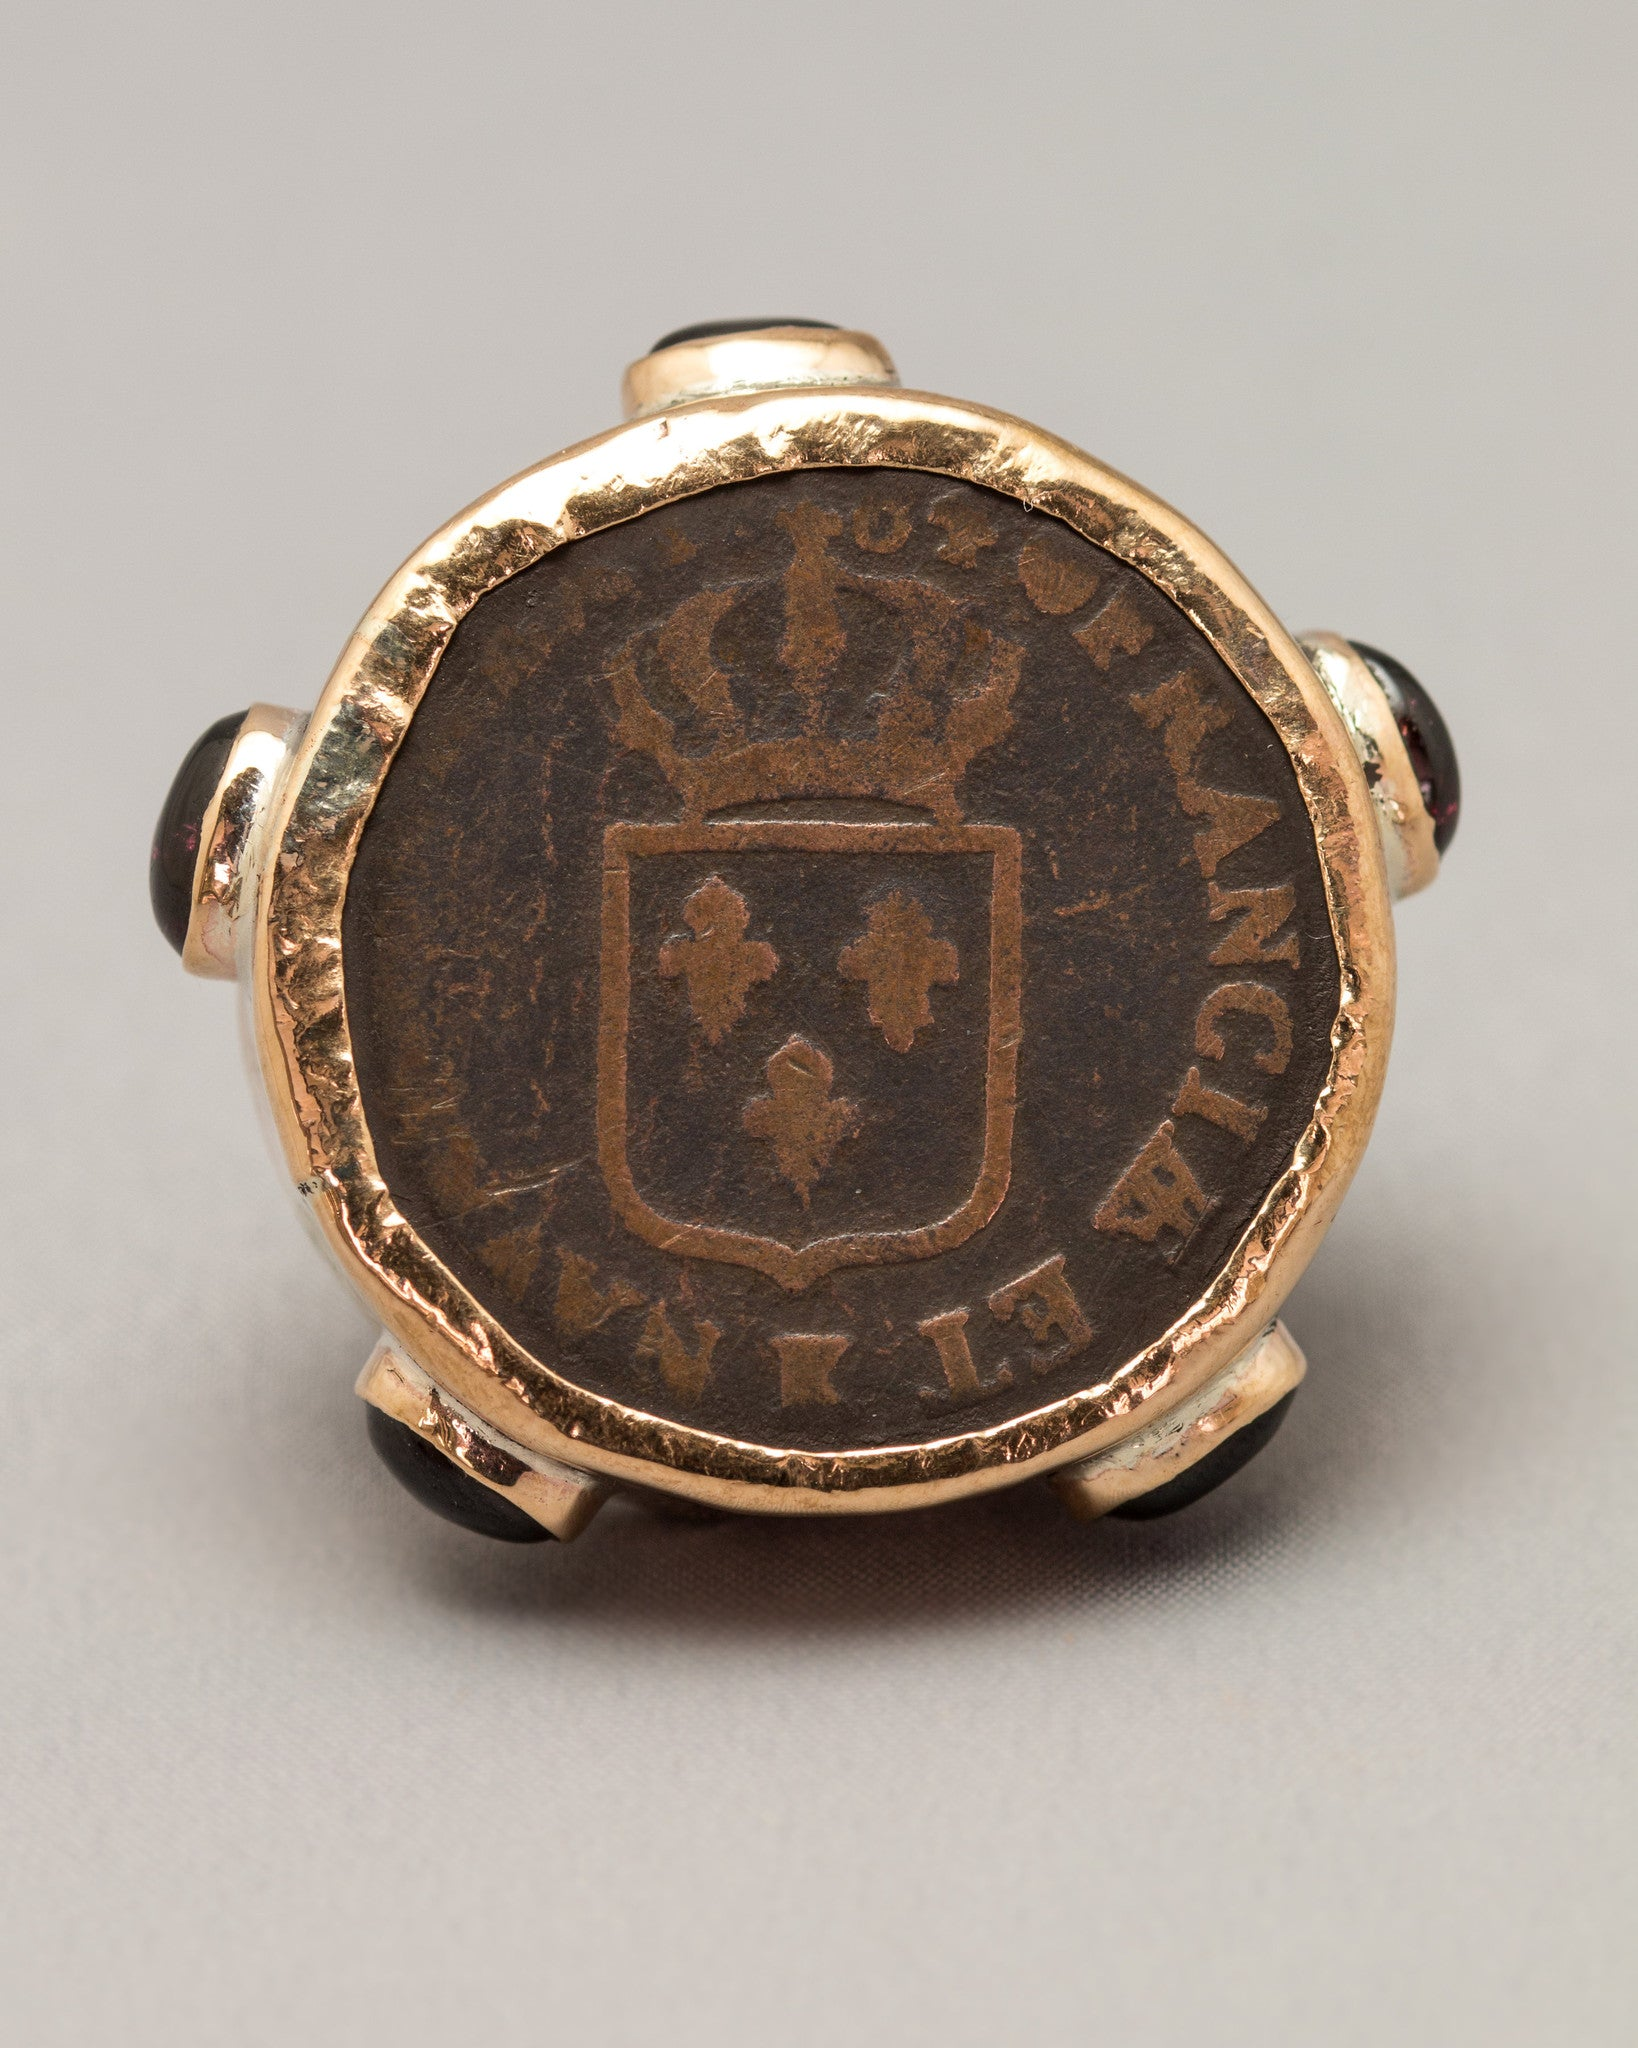 Quite Franci-ly A Beautiful Coin Ring